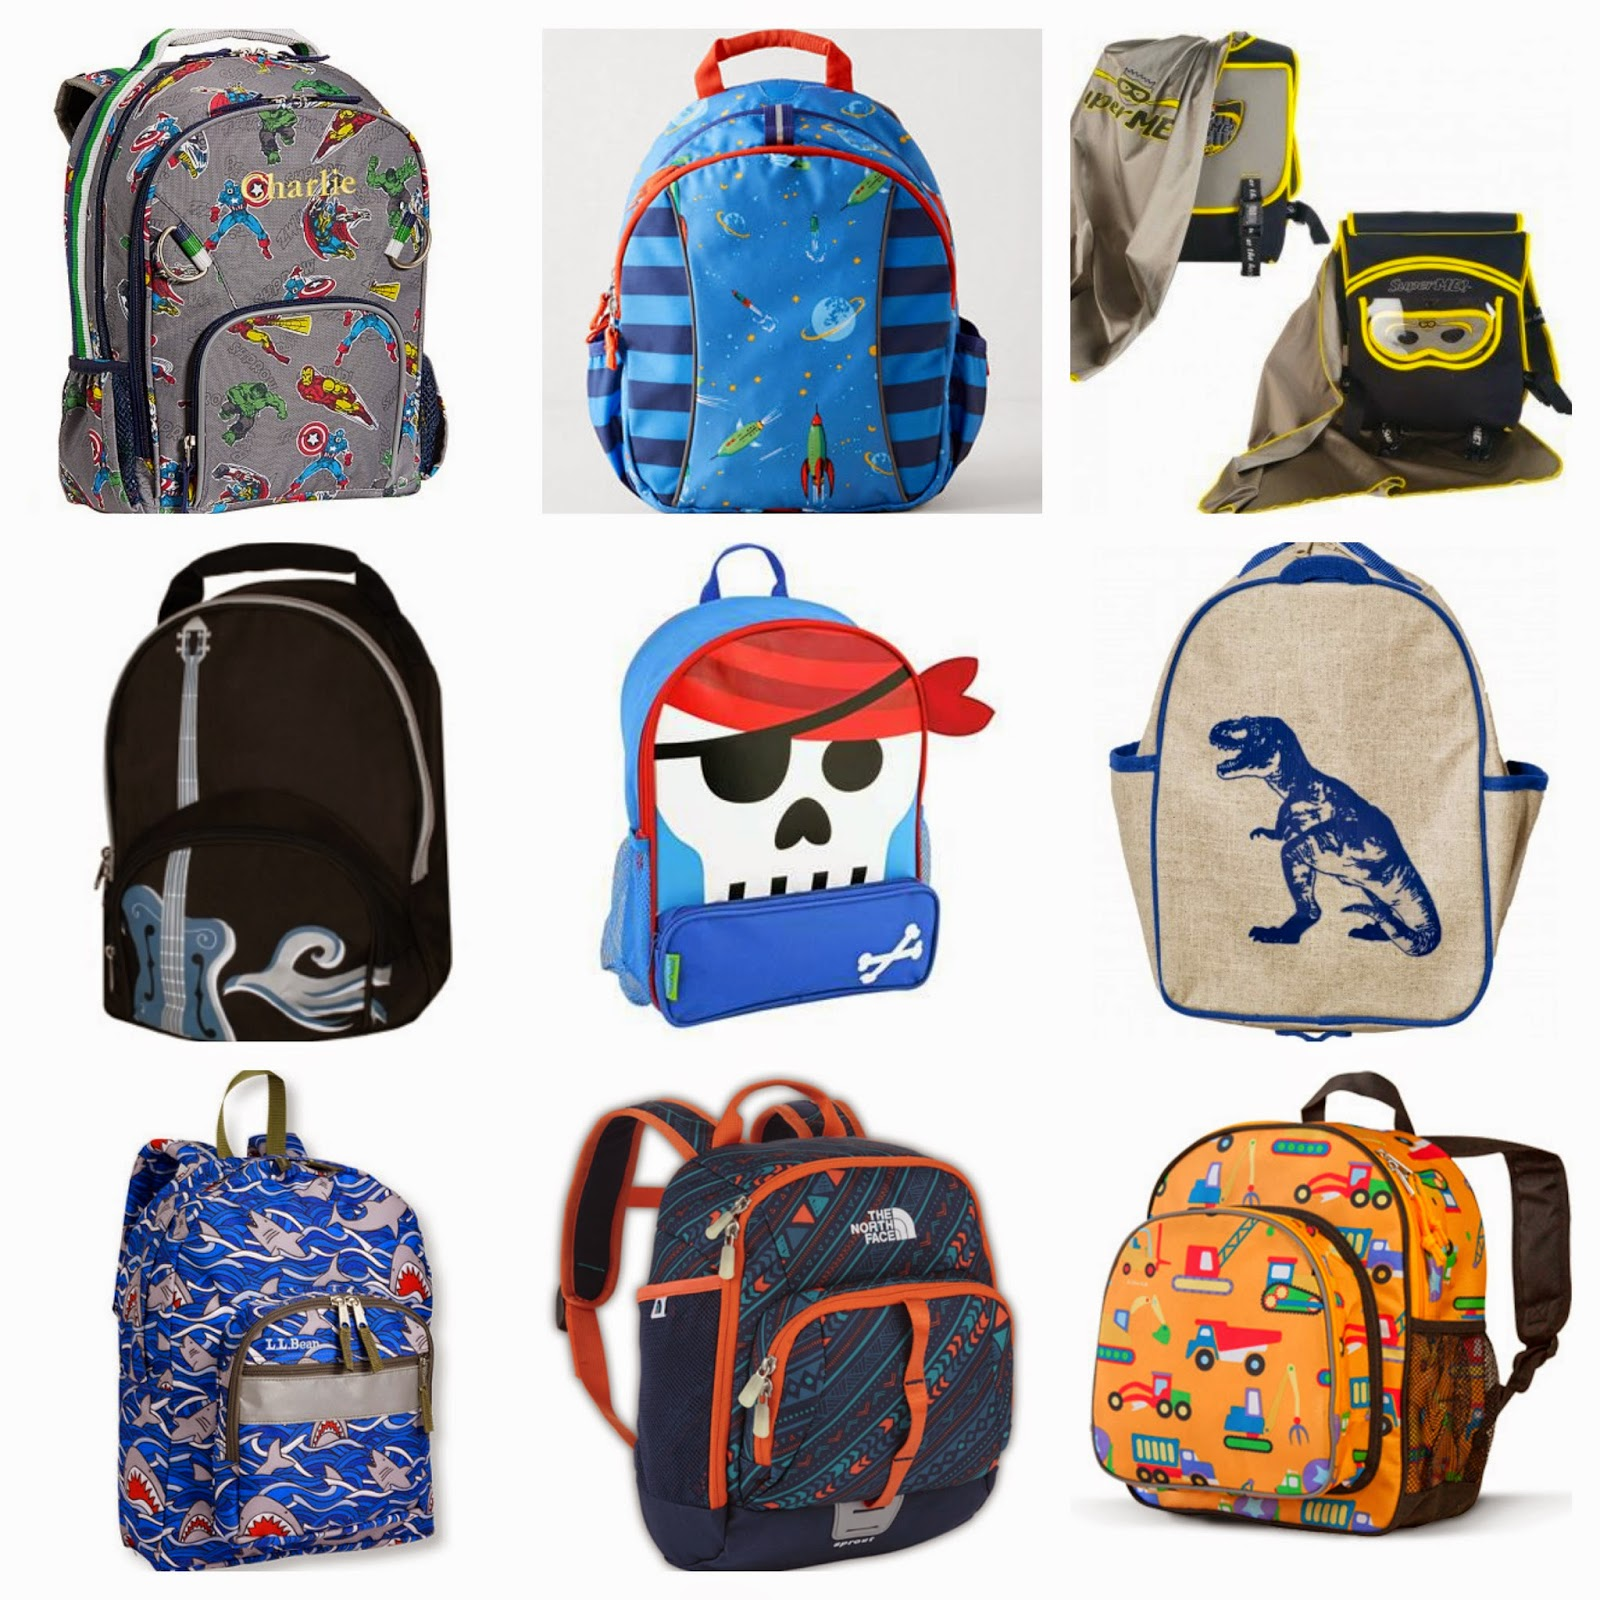 Cheap Backpacks For Kids lPSk4BMy